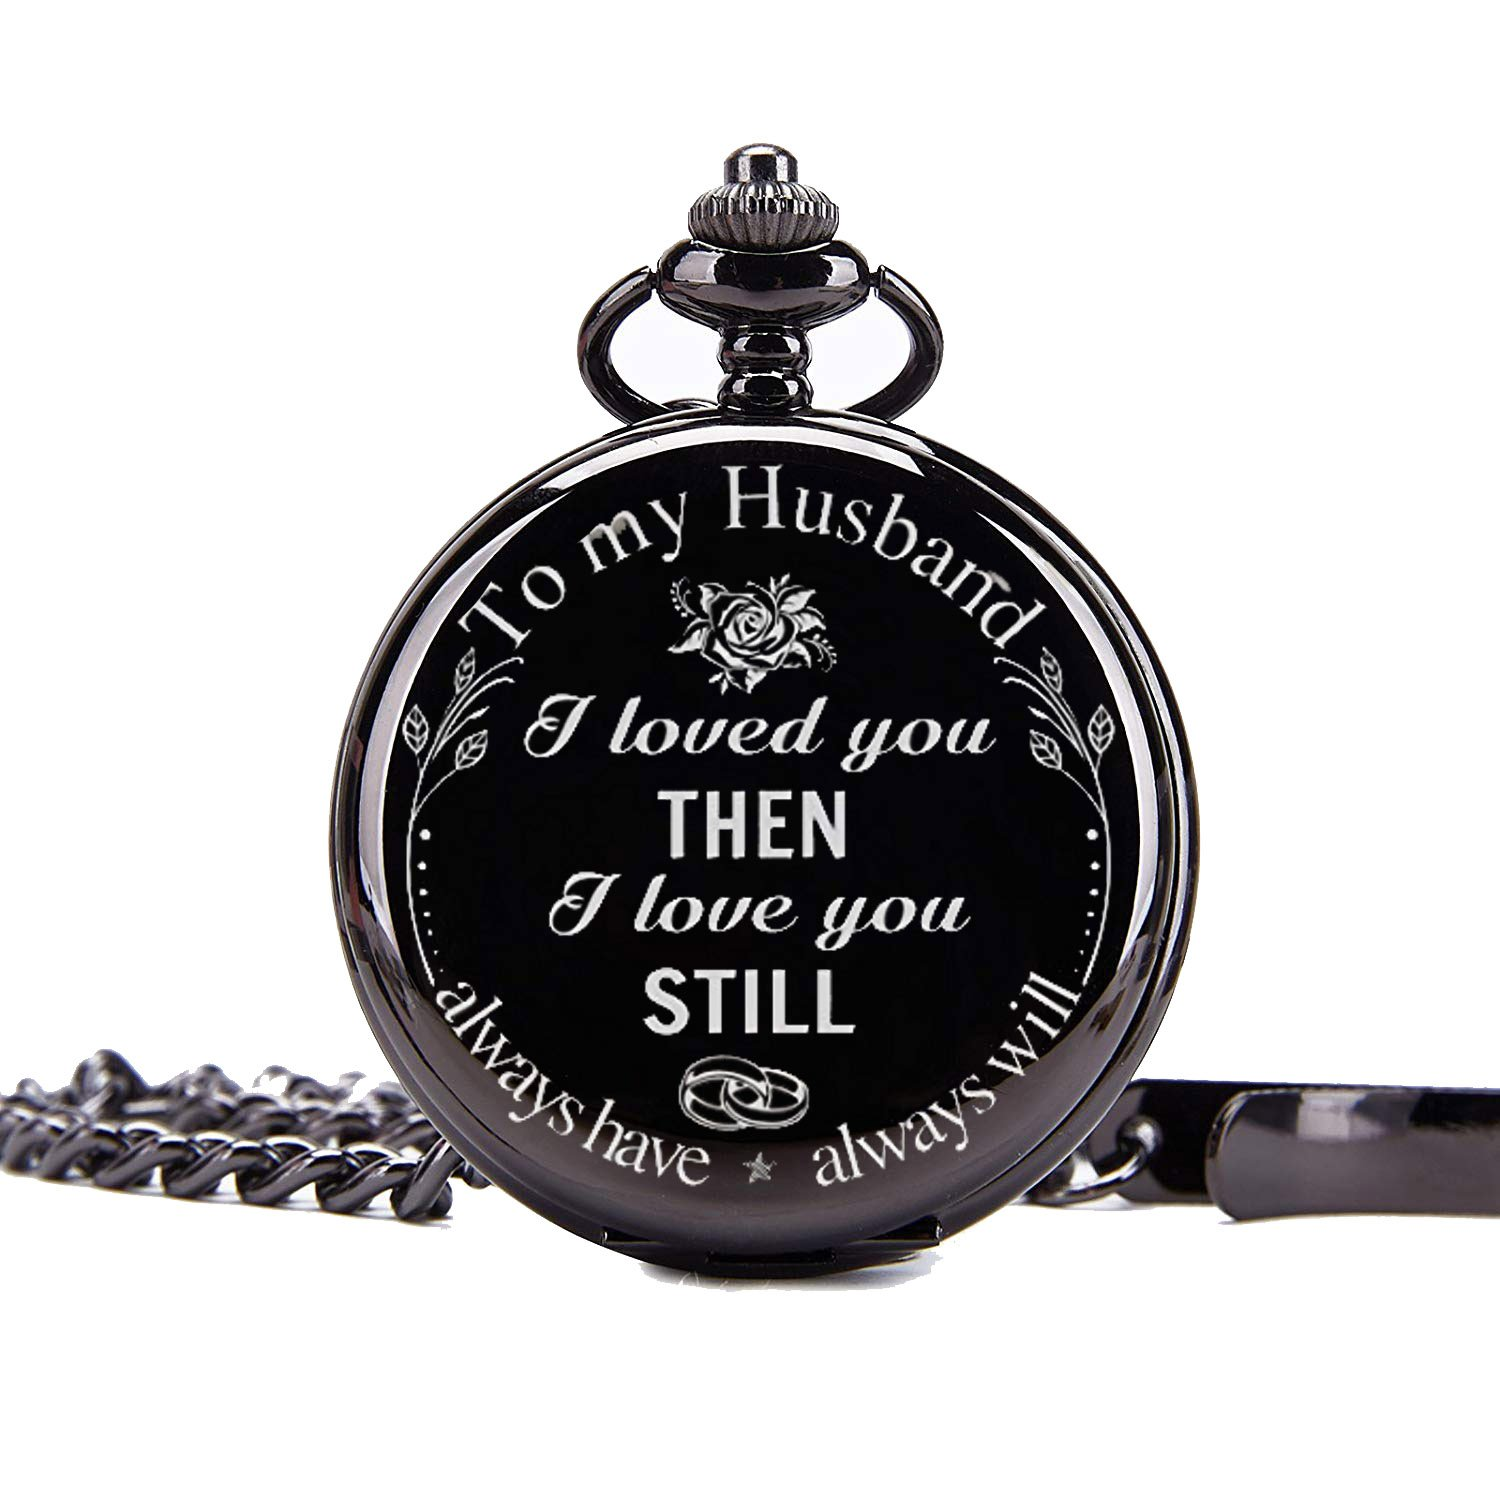 Mainbead Engraved Personalized Pocket Watch, Mens Pocket Watch Pocket Watch To Husband Gift From Wife To Husband,To my Husband I love you Pocket Watch,Husband Gift, Best Anniversary Gifts For Him